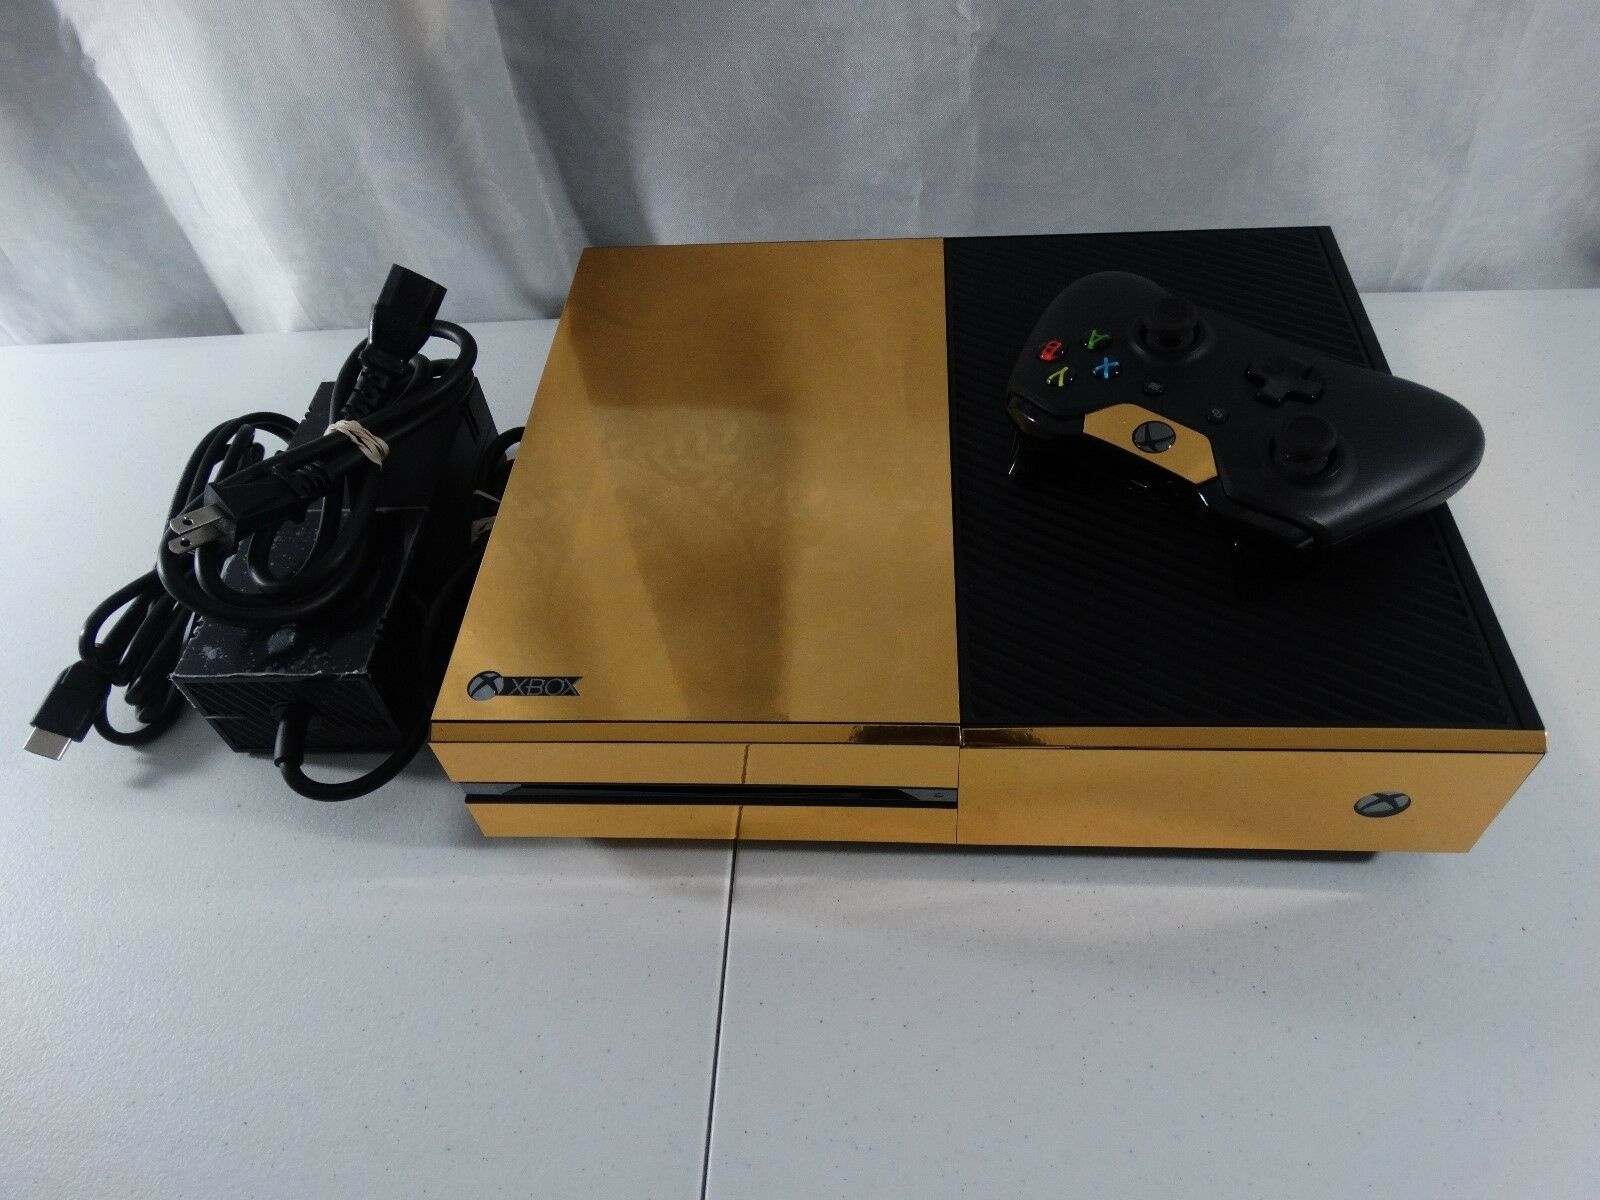 Microsoft Xbox One (1) 500 GB Console System - Gold Fully Working